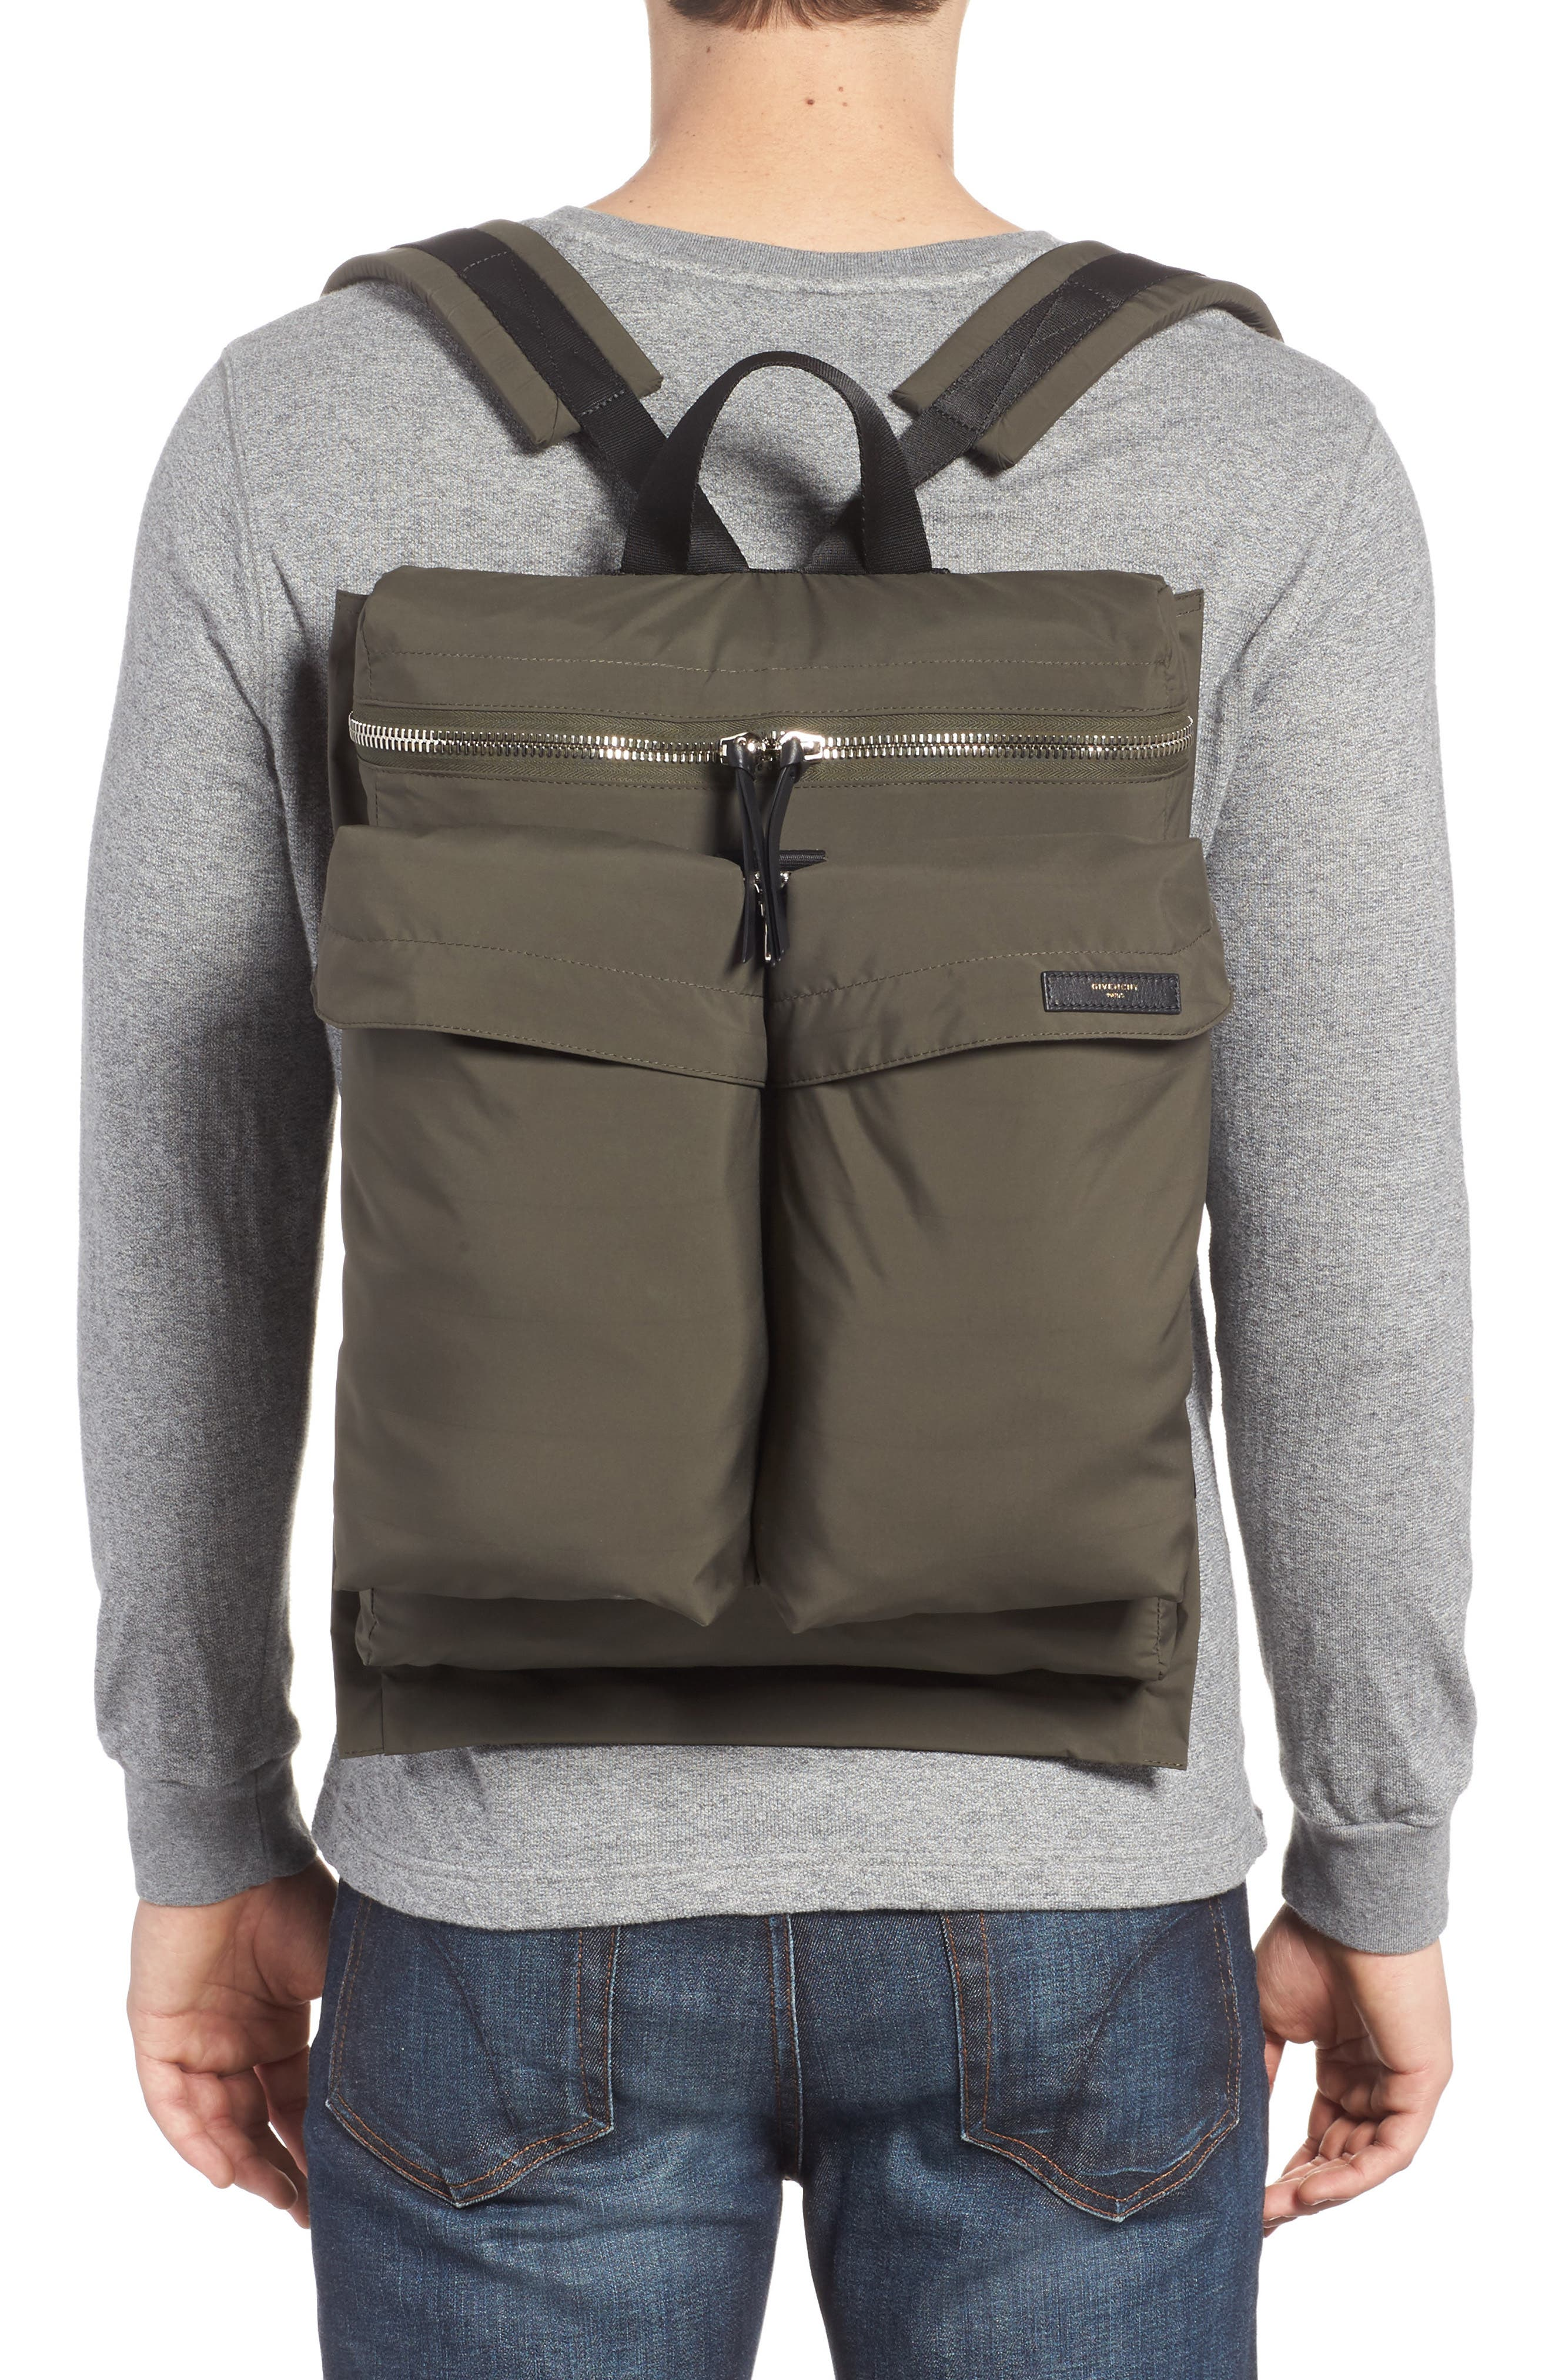 Aviator Backpack,                             Alternate thumbnail 2, color,                             305